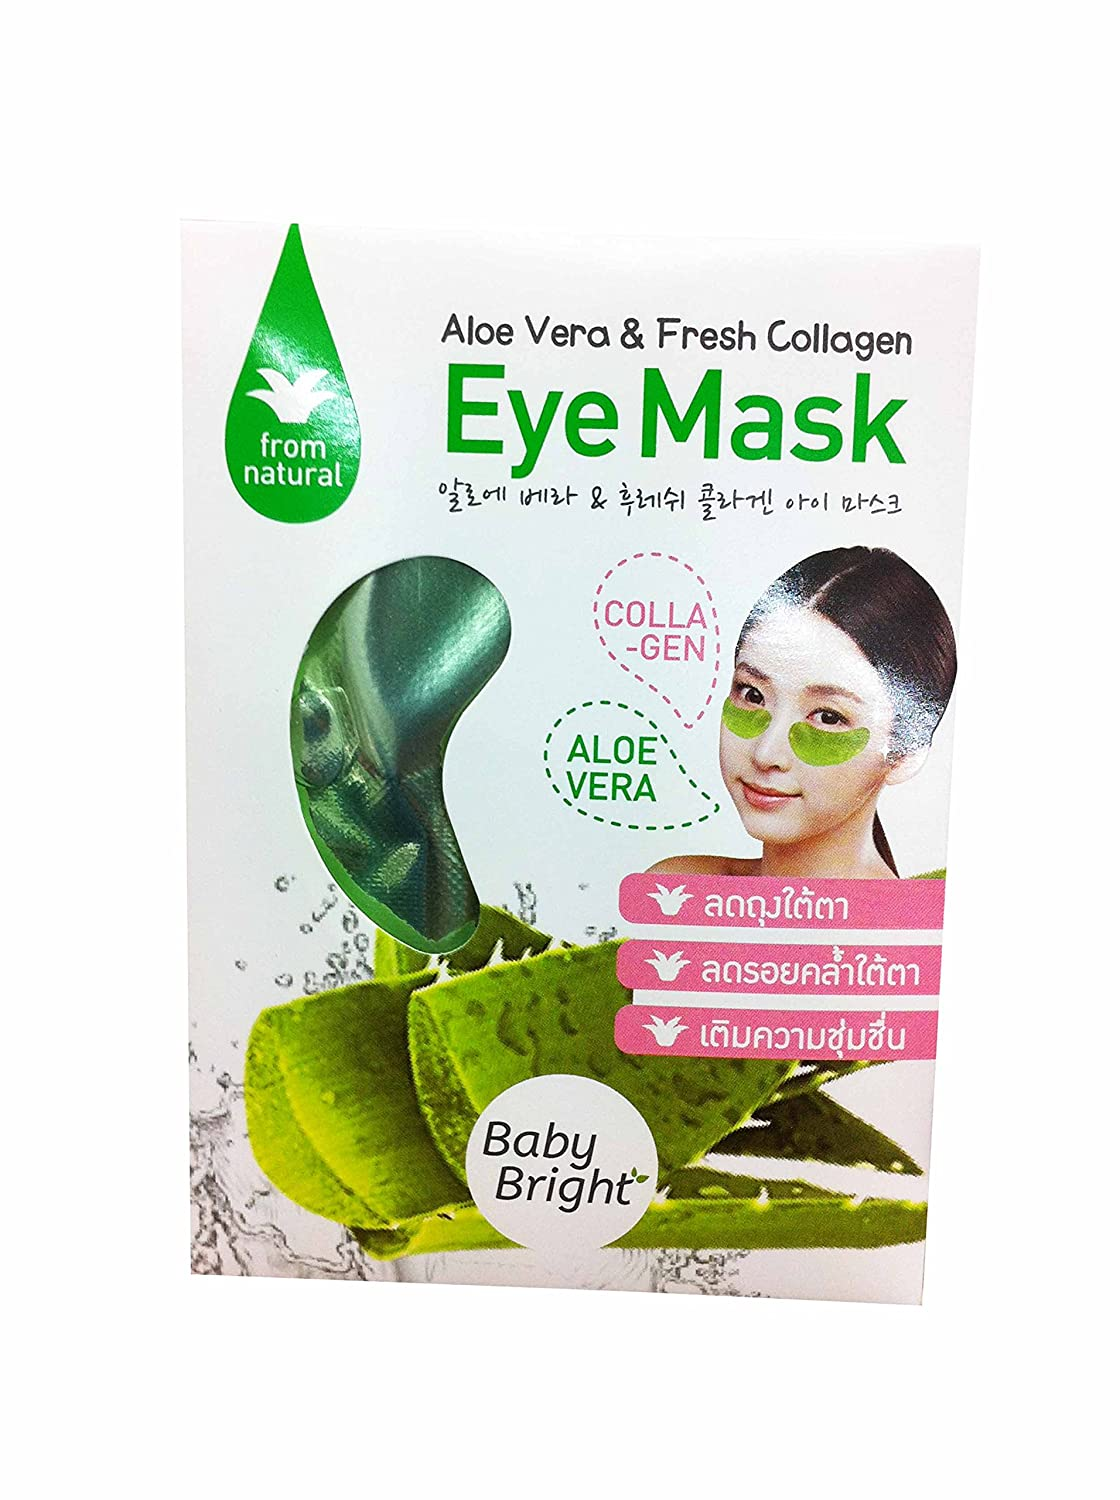 6 Packs of Aloe Vera & Fresh Collagen Eye Mask From Natural., Baby Bright (2.5 G X 2 Pcs.; 1 Pair/ Pack)